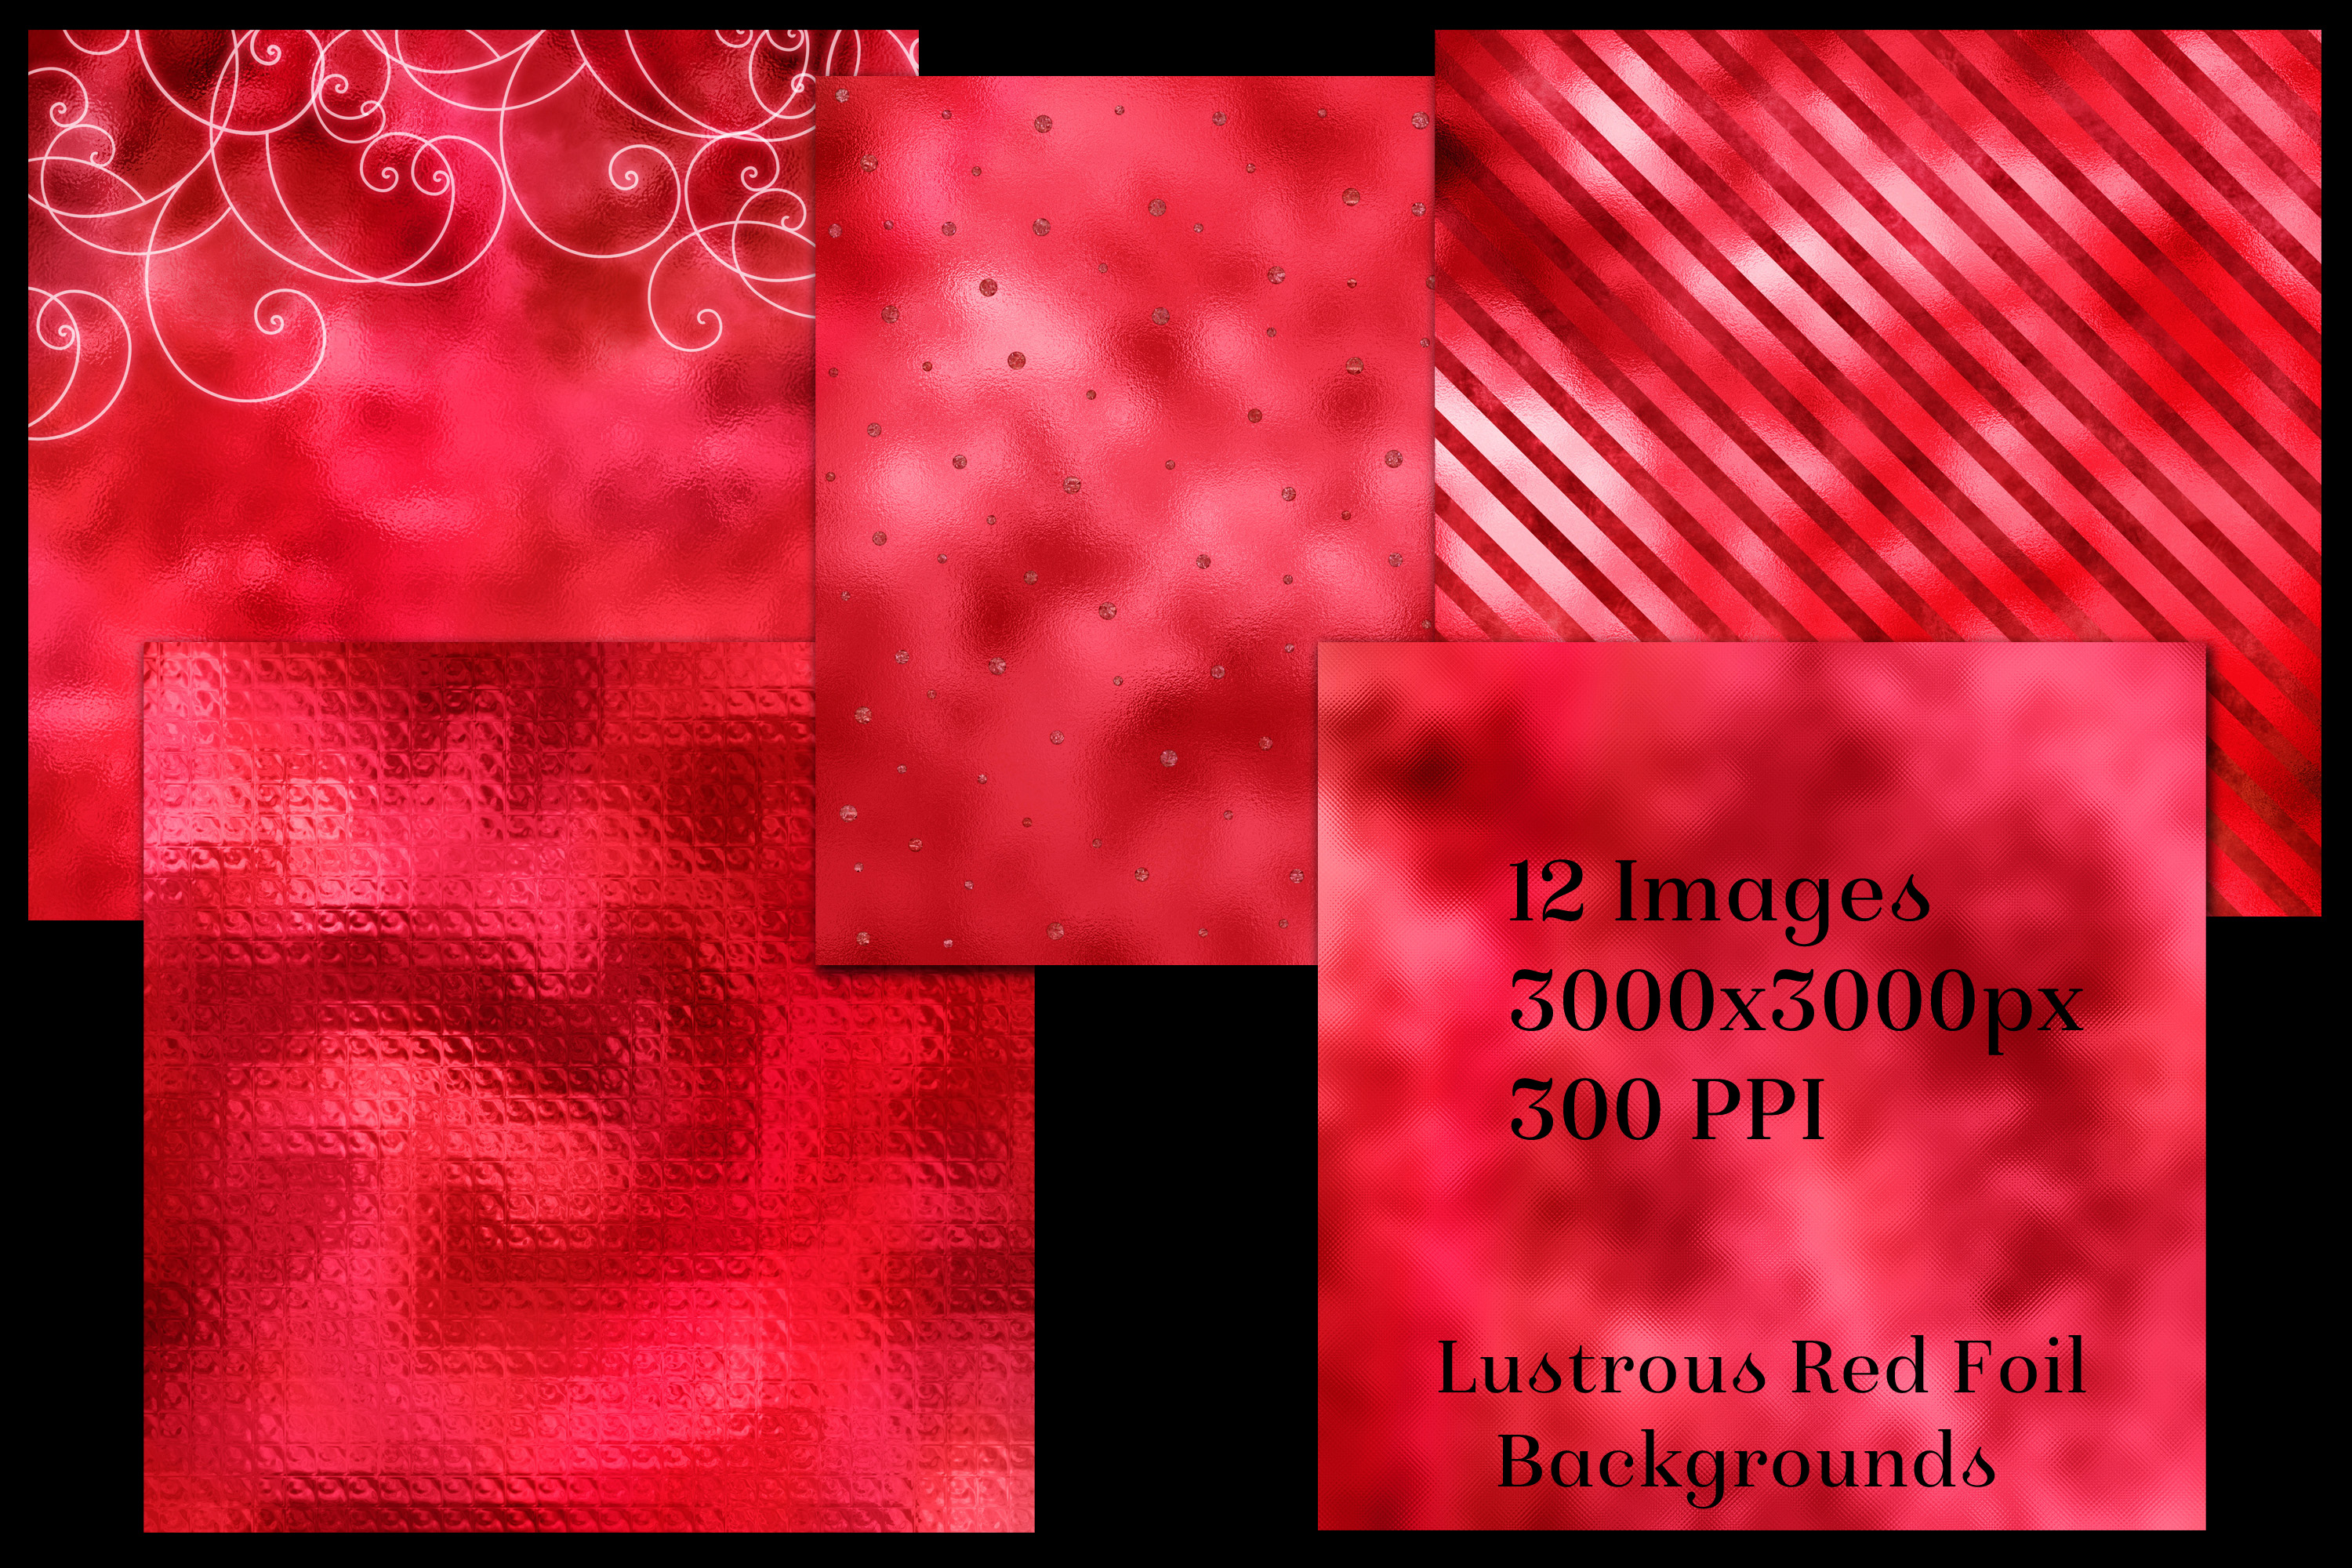 Lustrous Red Foil Backgrounds - 12 Image Textures Set example image 2